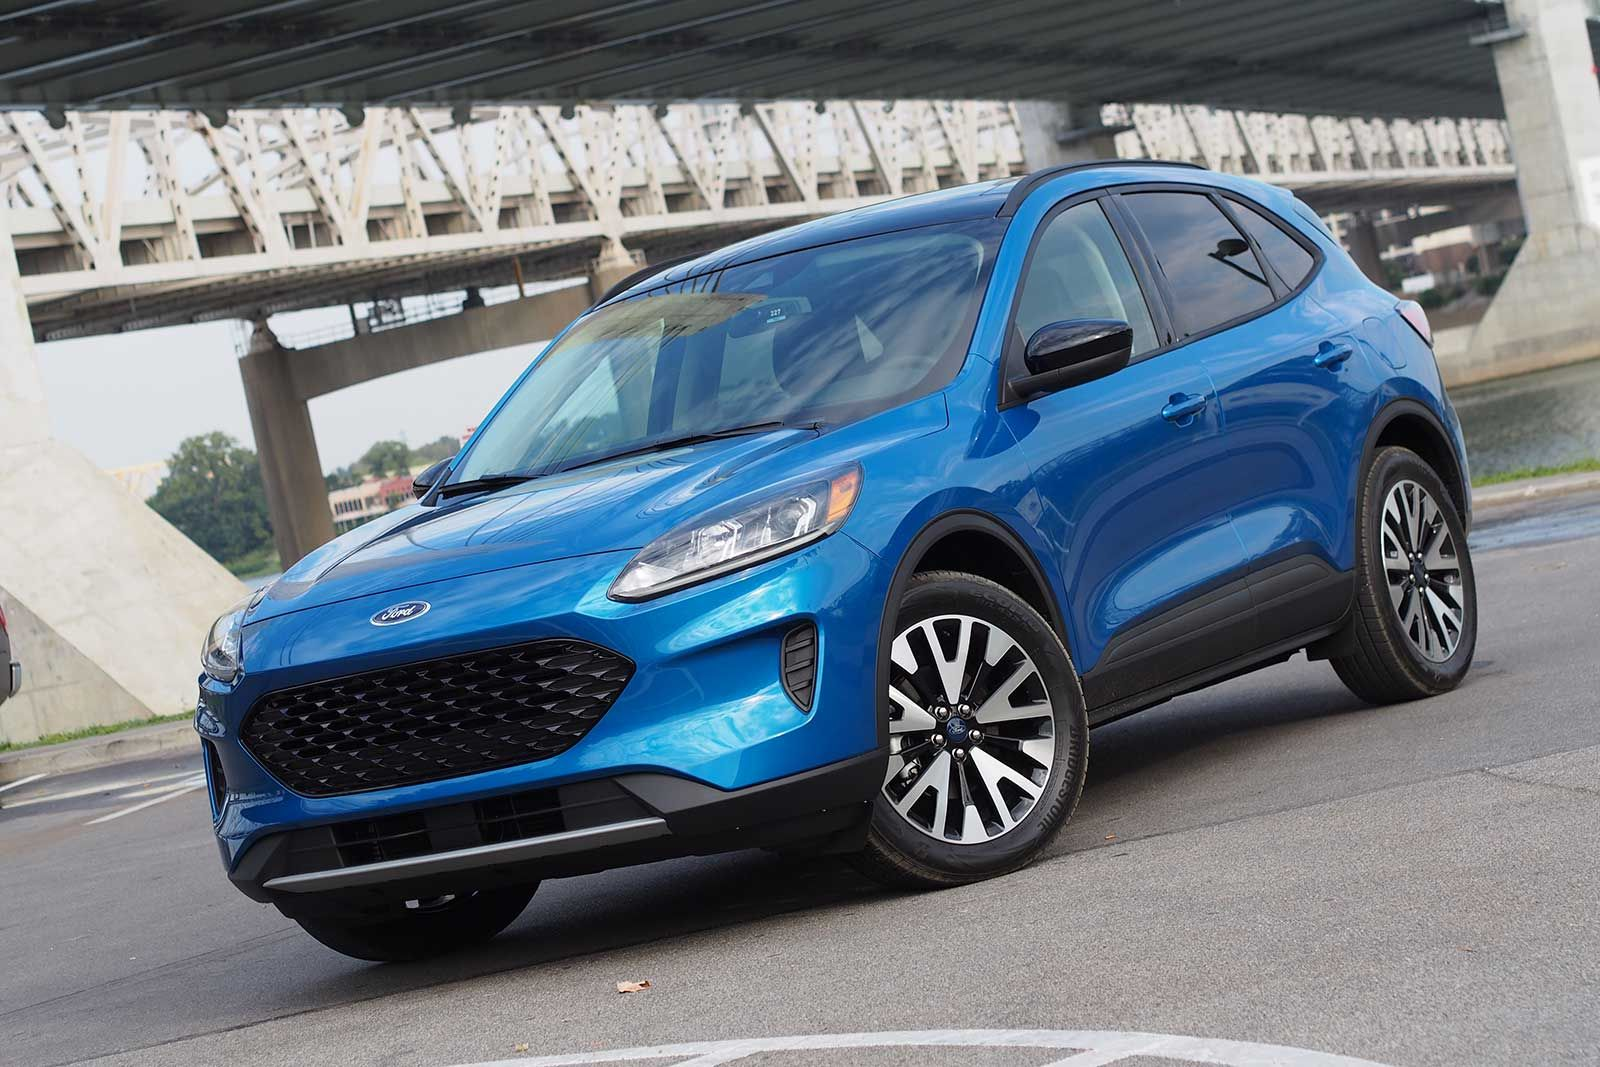 The 2021 Ford Escape Comes To The Marketplace After The Current Comprehensive Remodeling And Ford Doesn T Have Much Room For I Ford Escape Ford Suv Hybrid Car